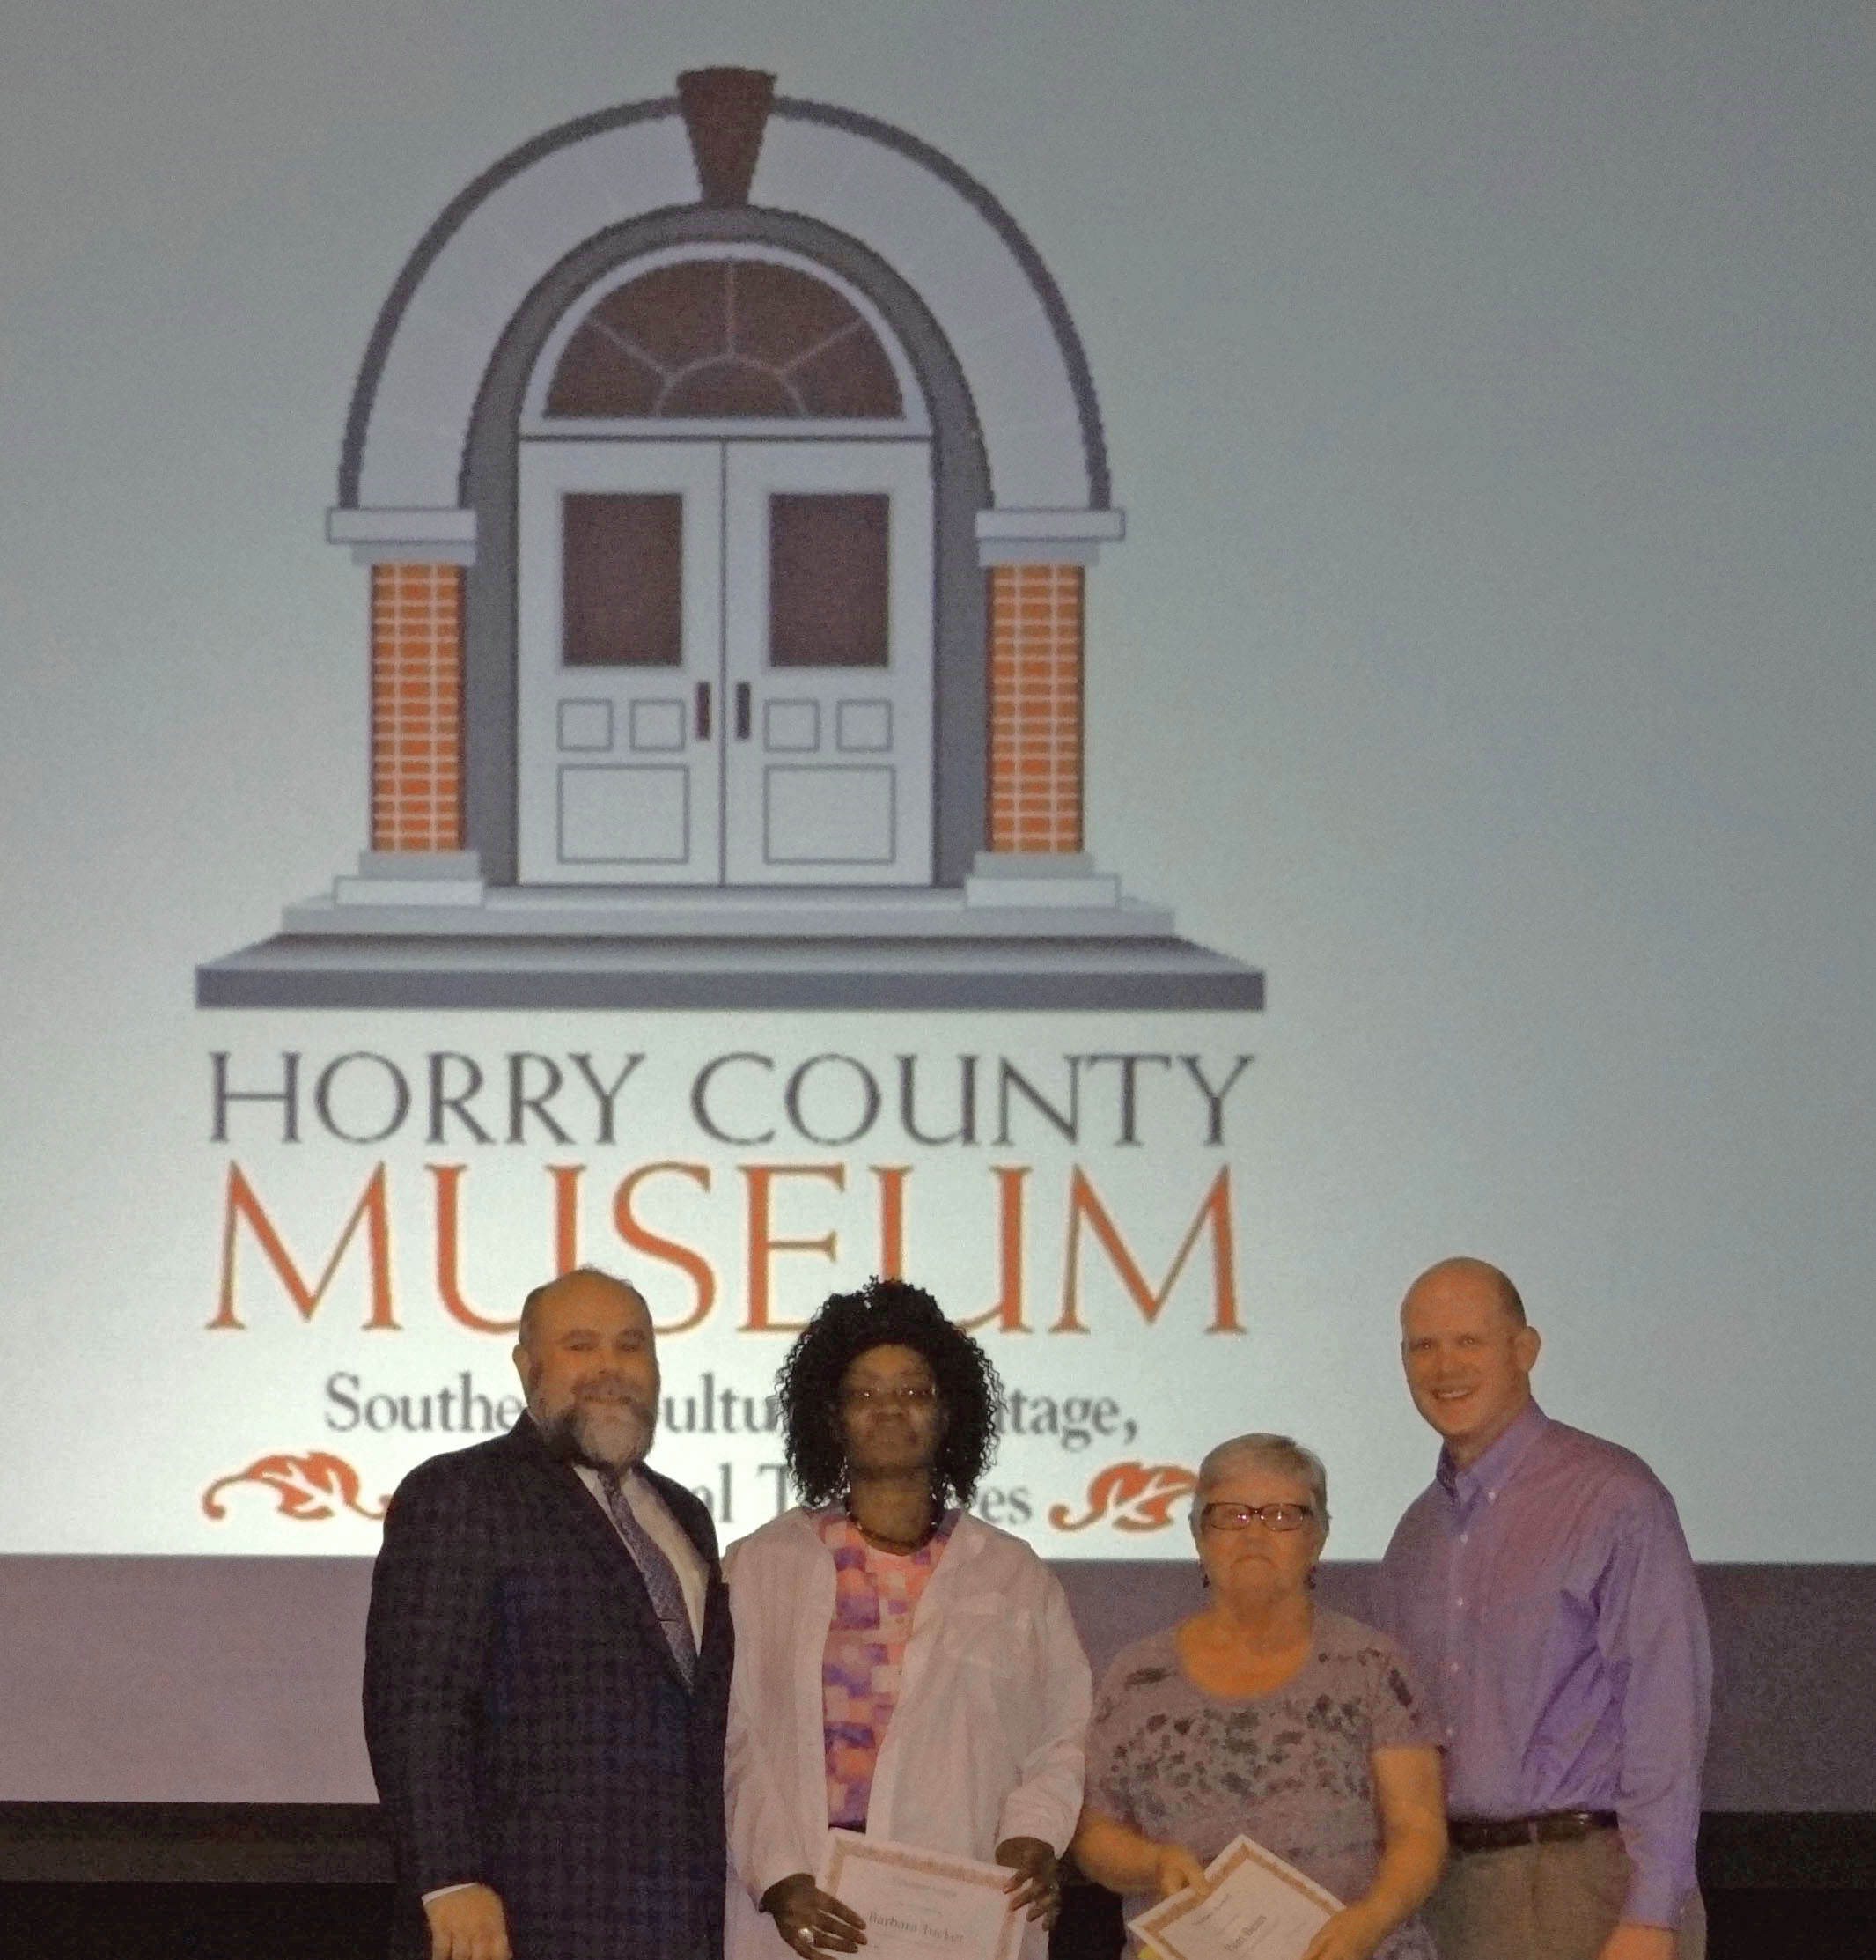 Museum Greeters: Barbara Tucker, Jim & Pam Bean